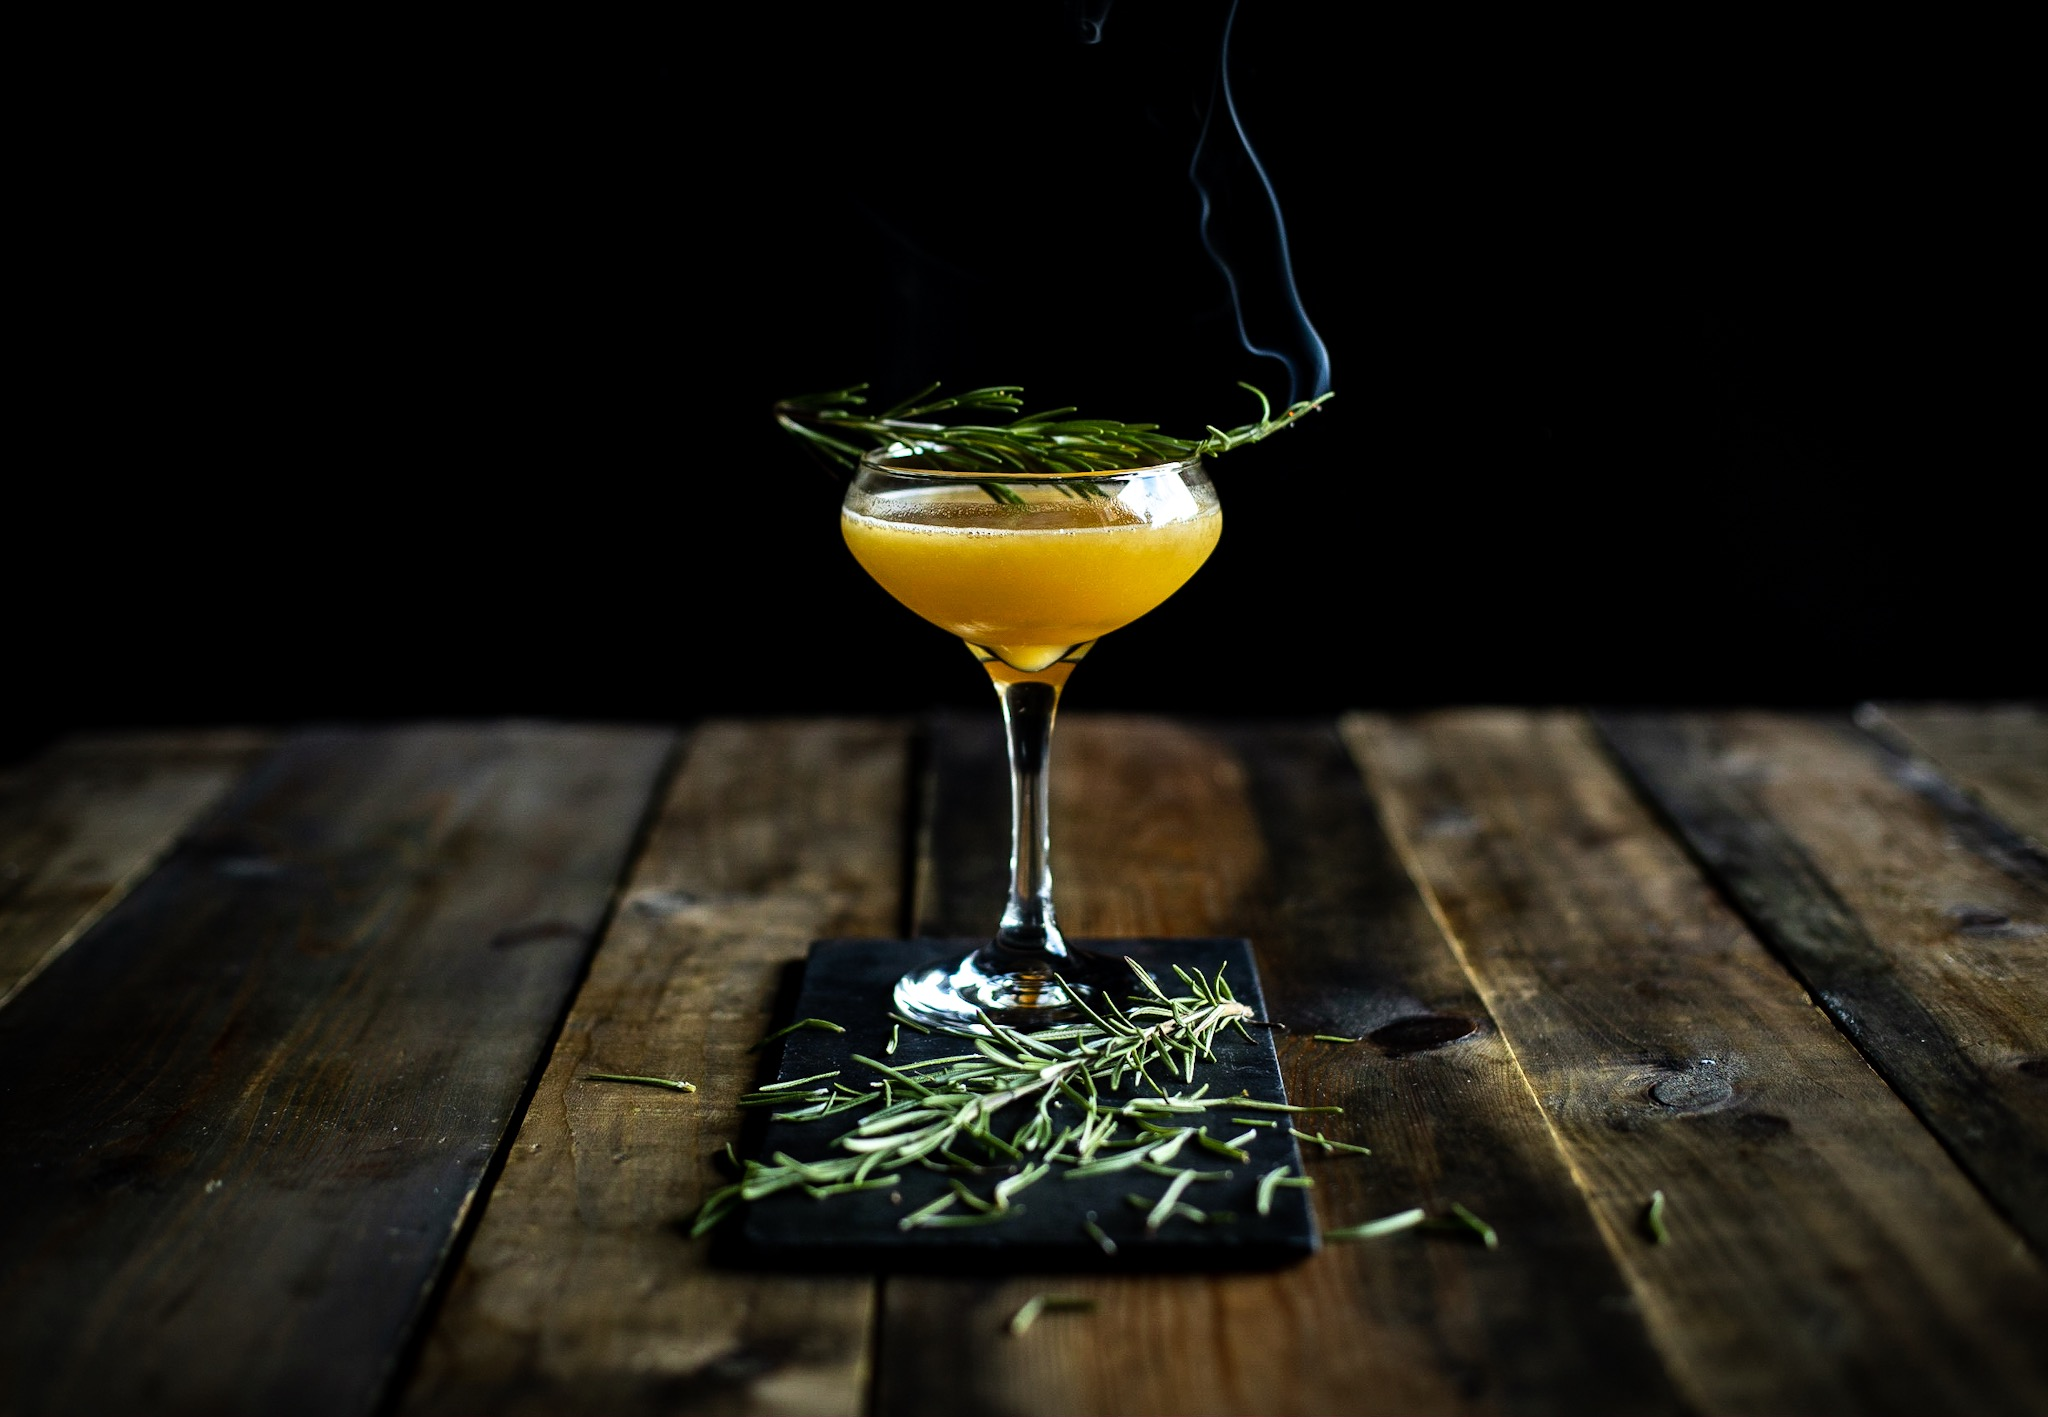 Our wonderful 'A Break In The Clouds' cocktail